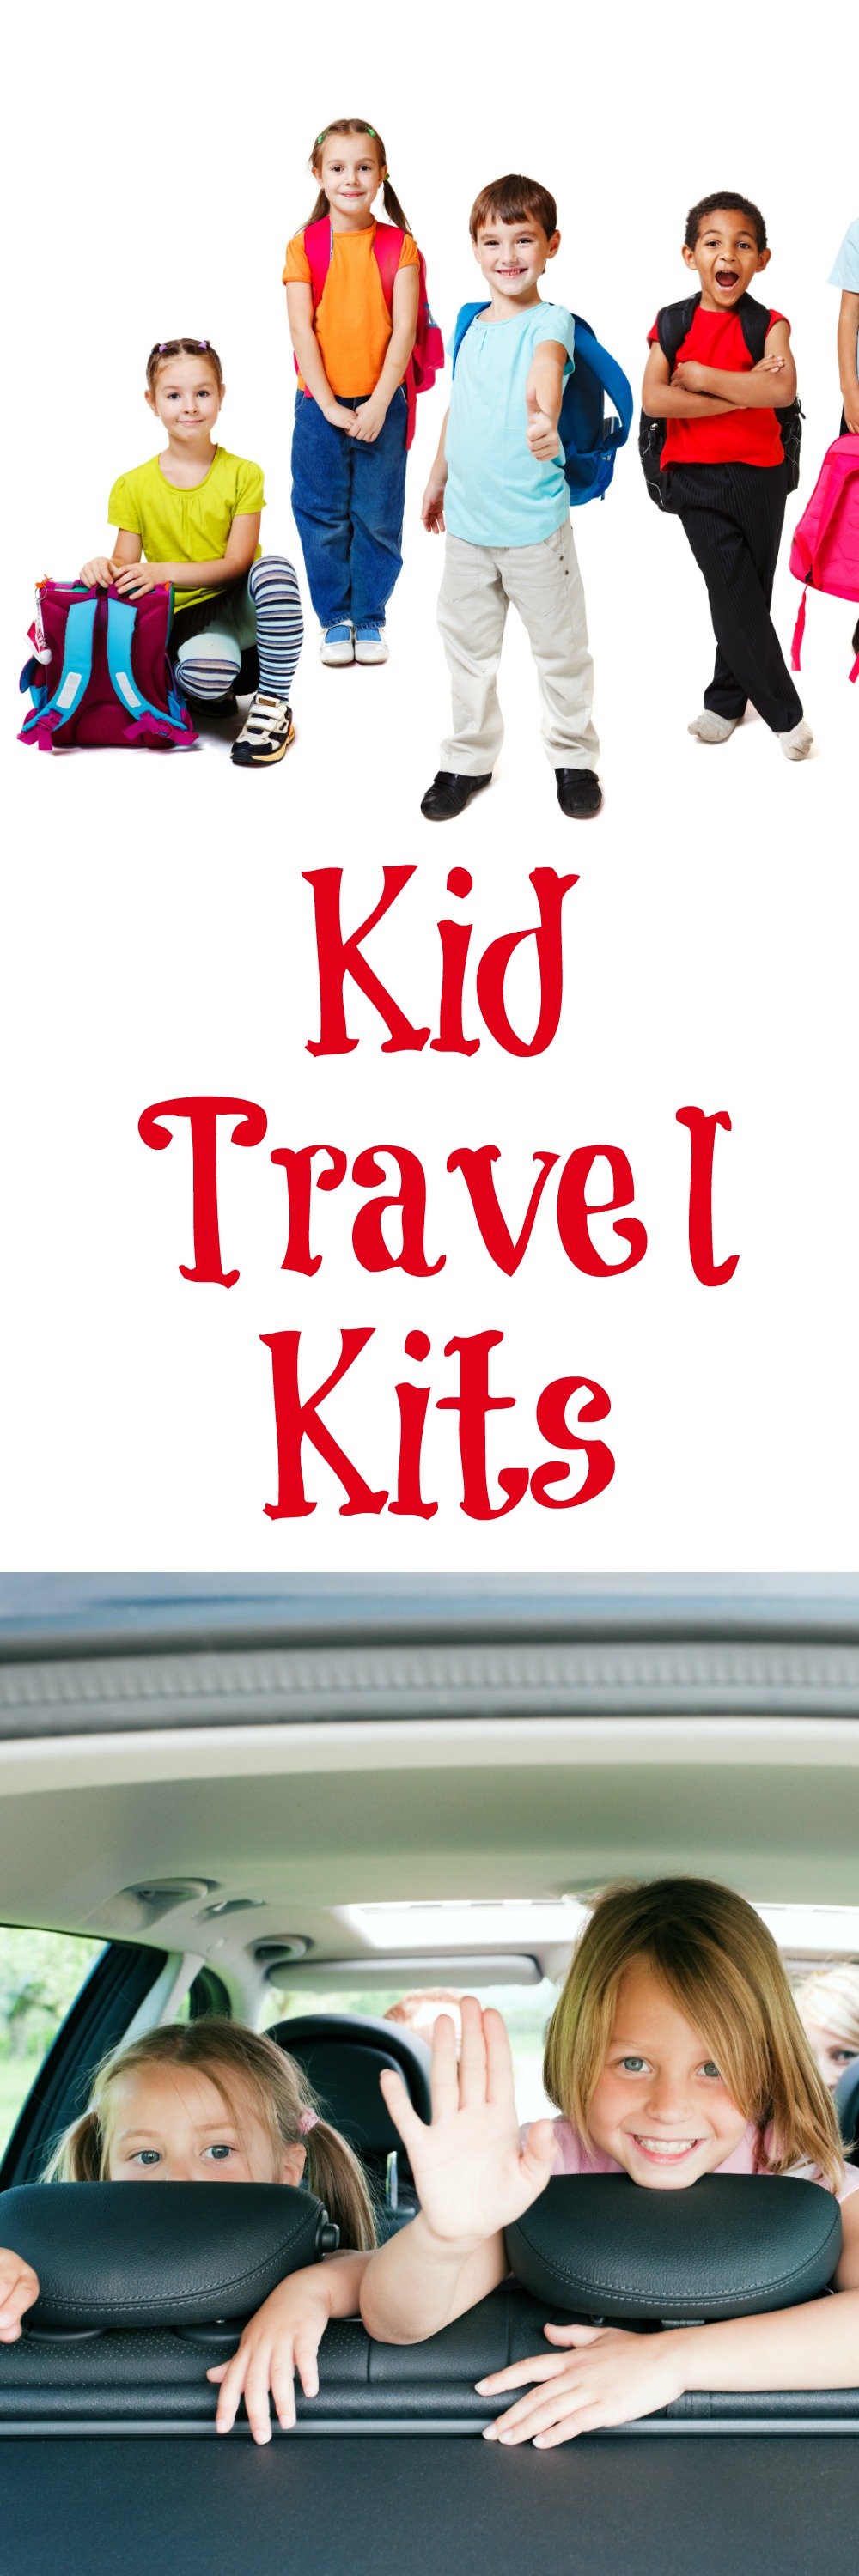 Kid Travel Kits--Planning on hitting the road this summer? Make sure to pack some Kid Travel Kits to make the trip easier!